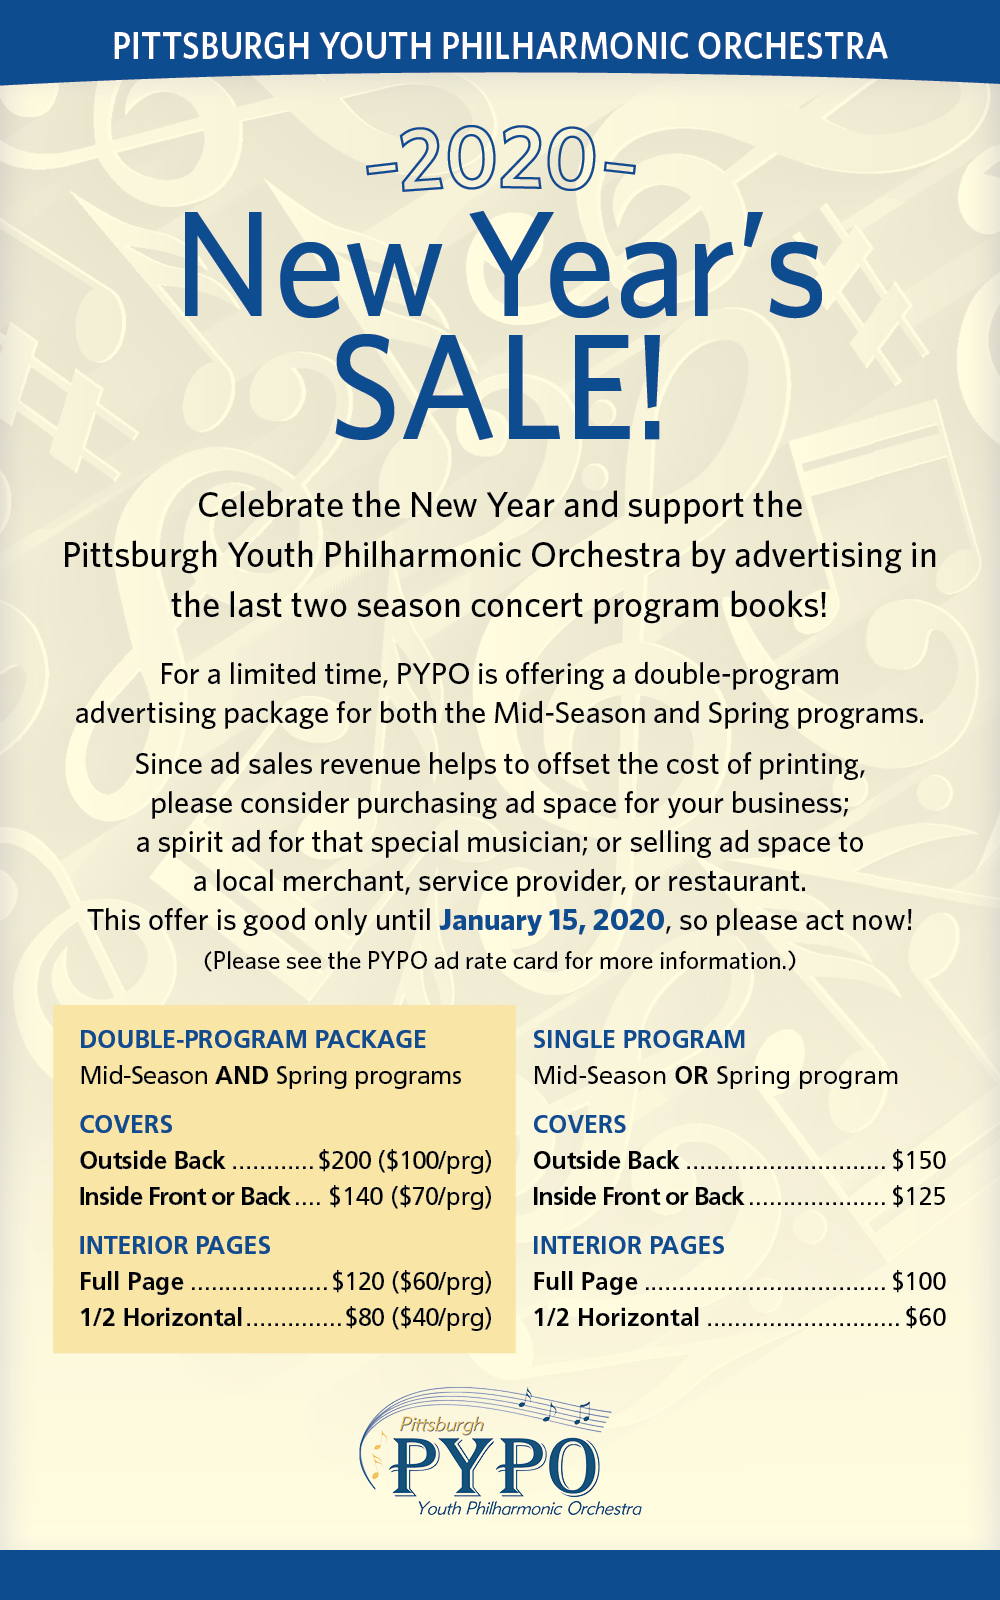 pypo-2019-20-program-advertising-ny-sale_final2